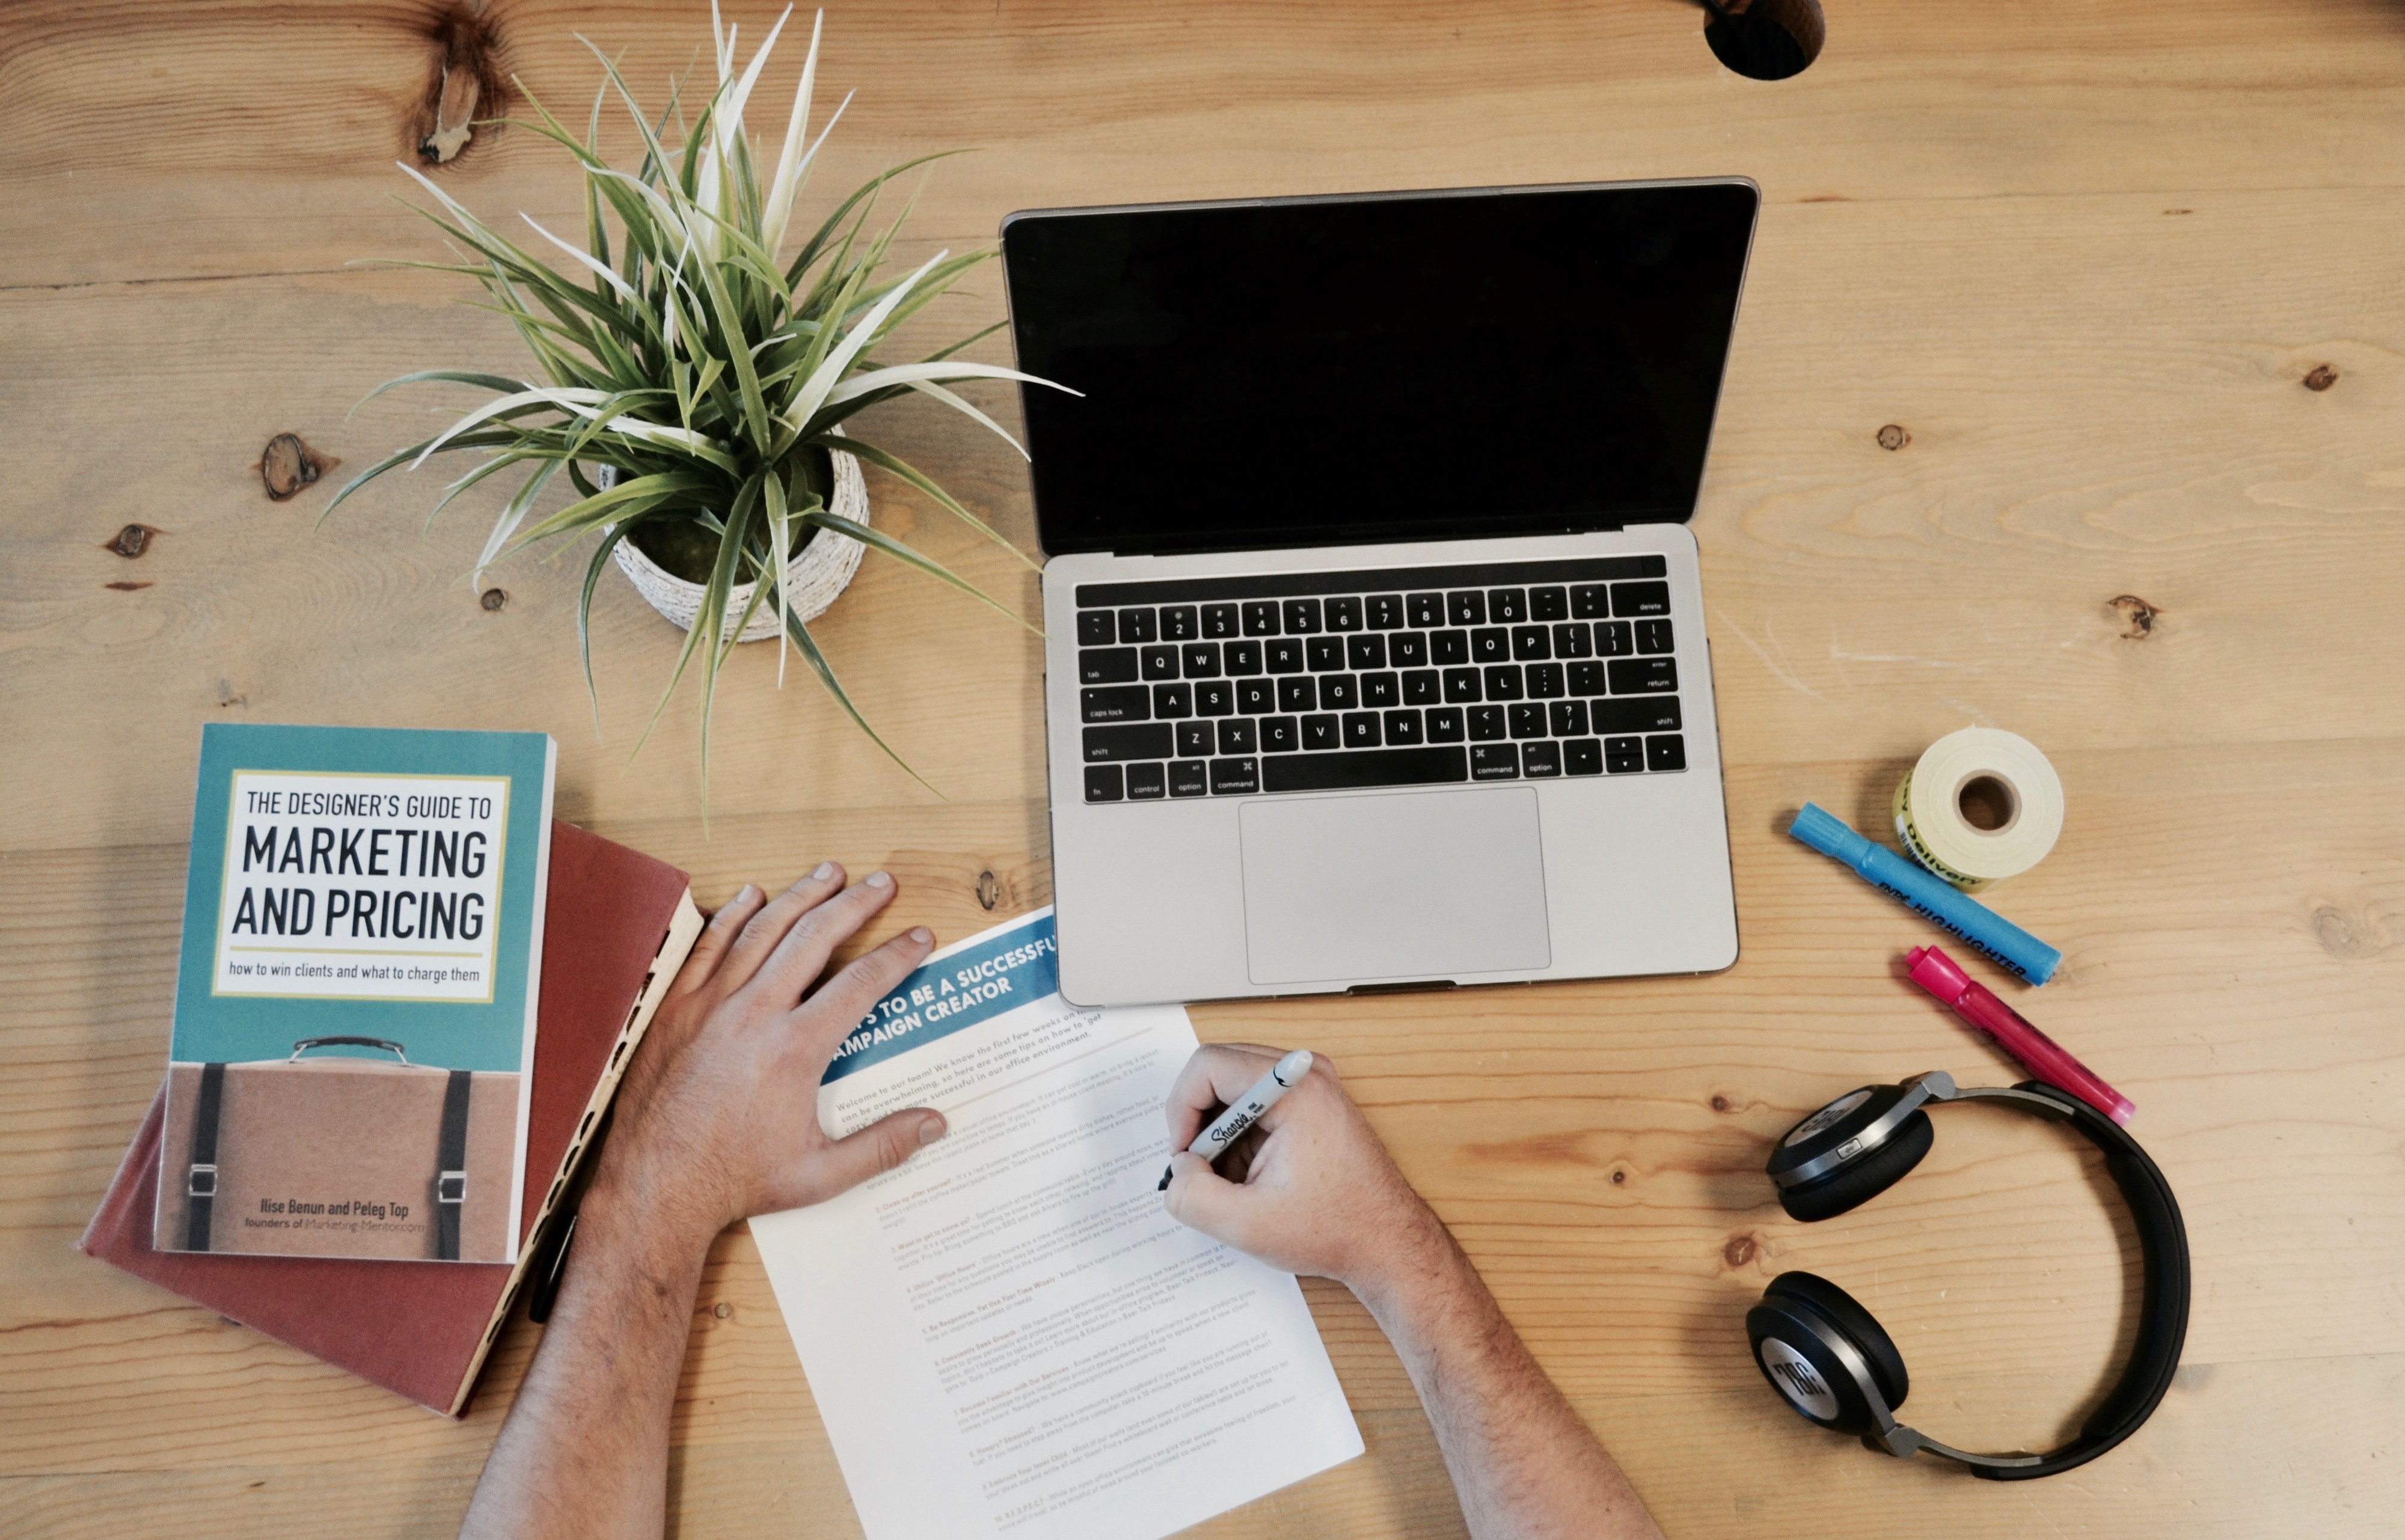 Marketing terms useful for business owners